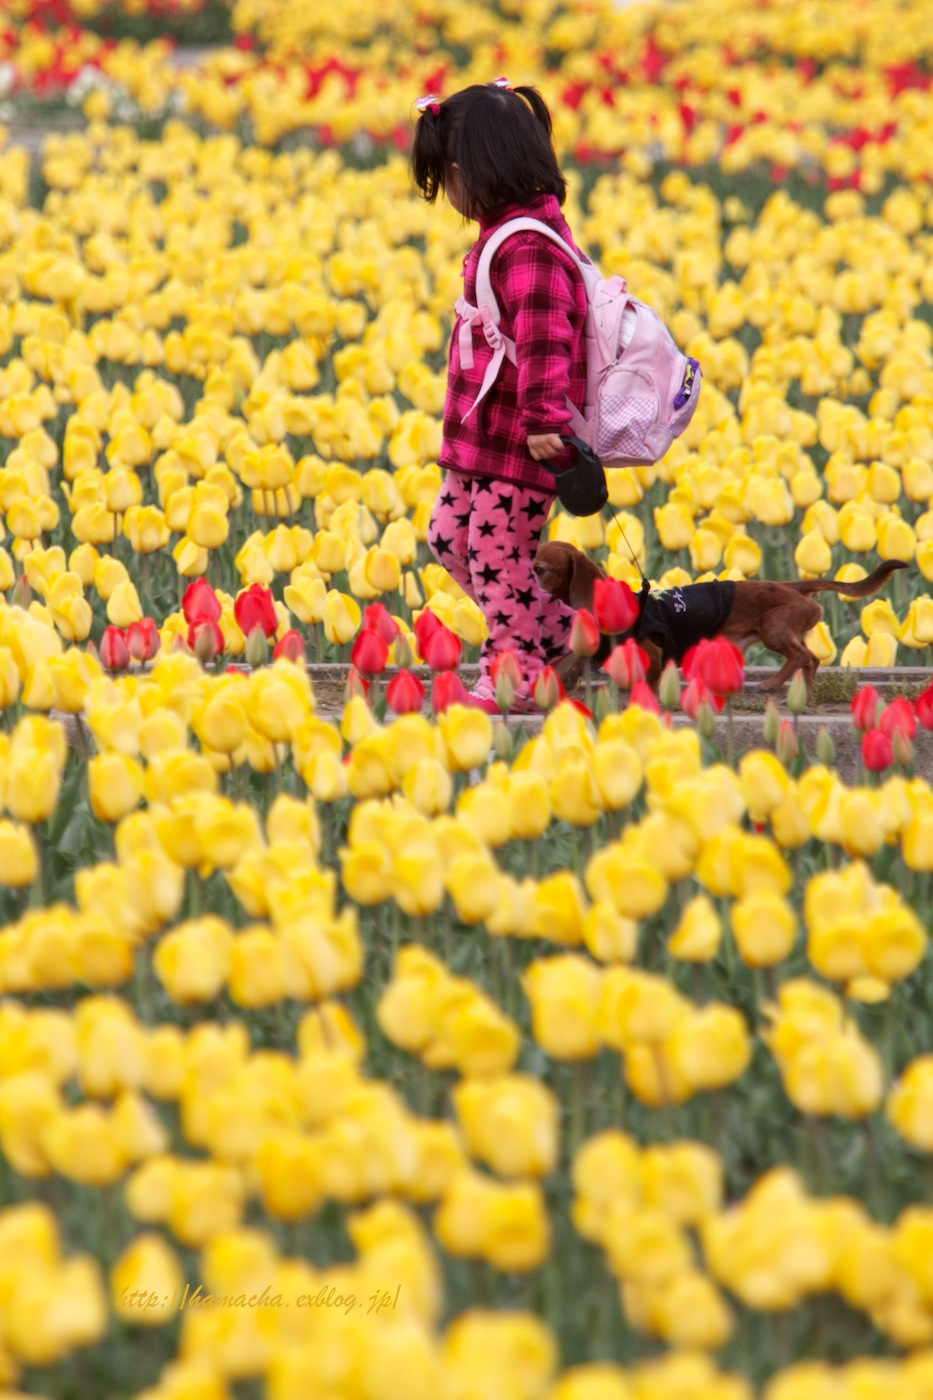 Flowers and Children_c0158775_20185974.jpg